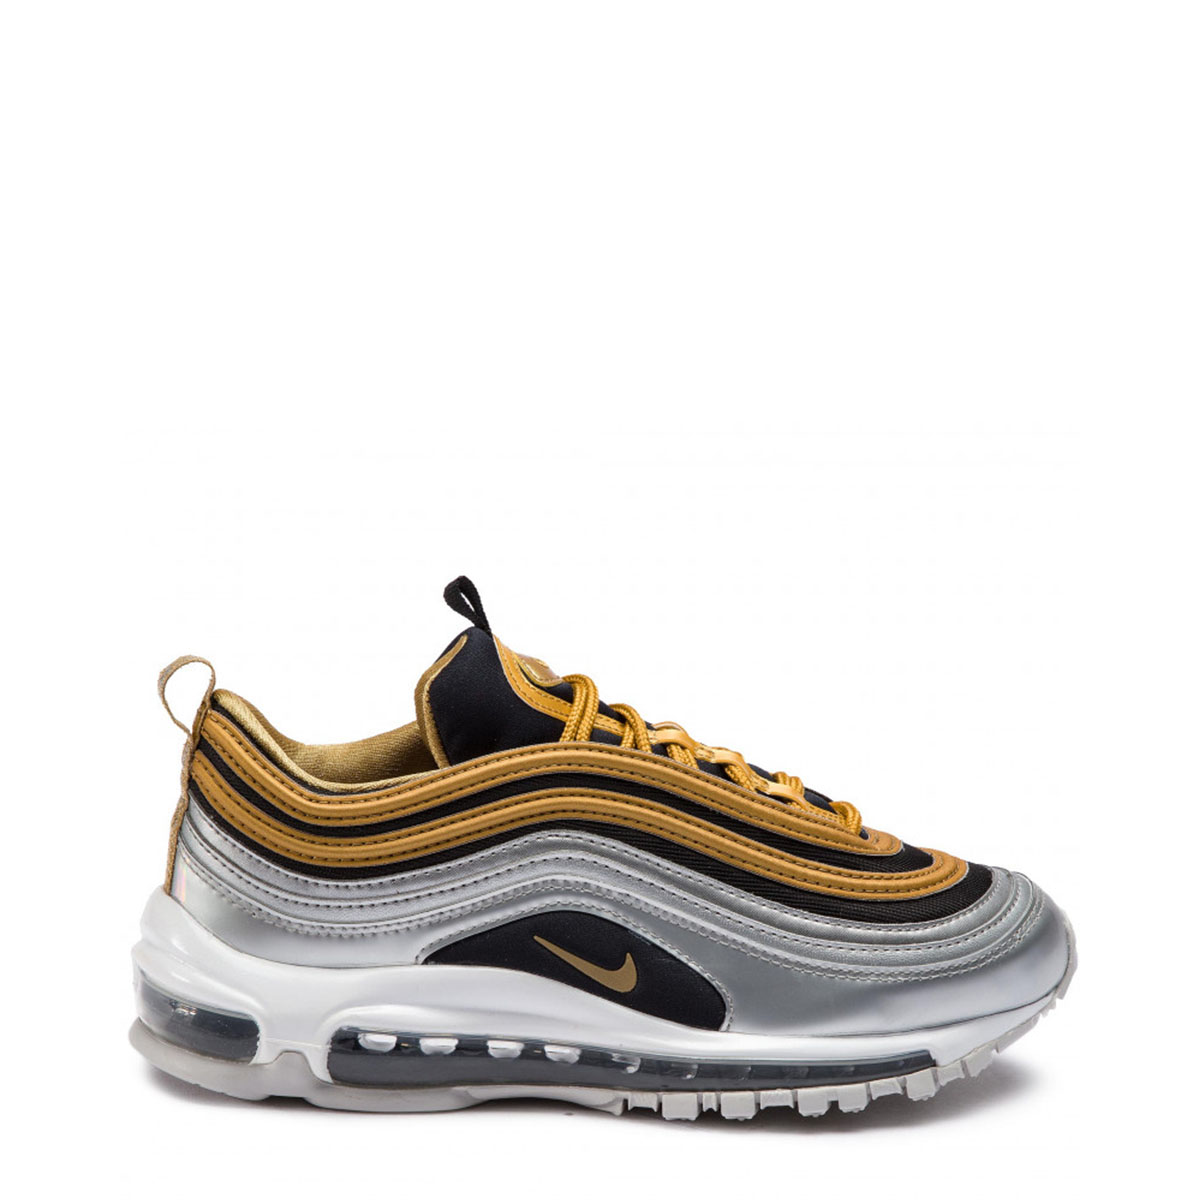 Baskets / Sneakers  Nike AQ4137-700_W-AirMax97 grey